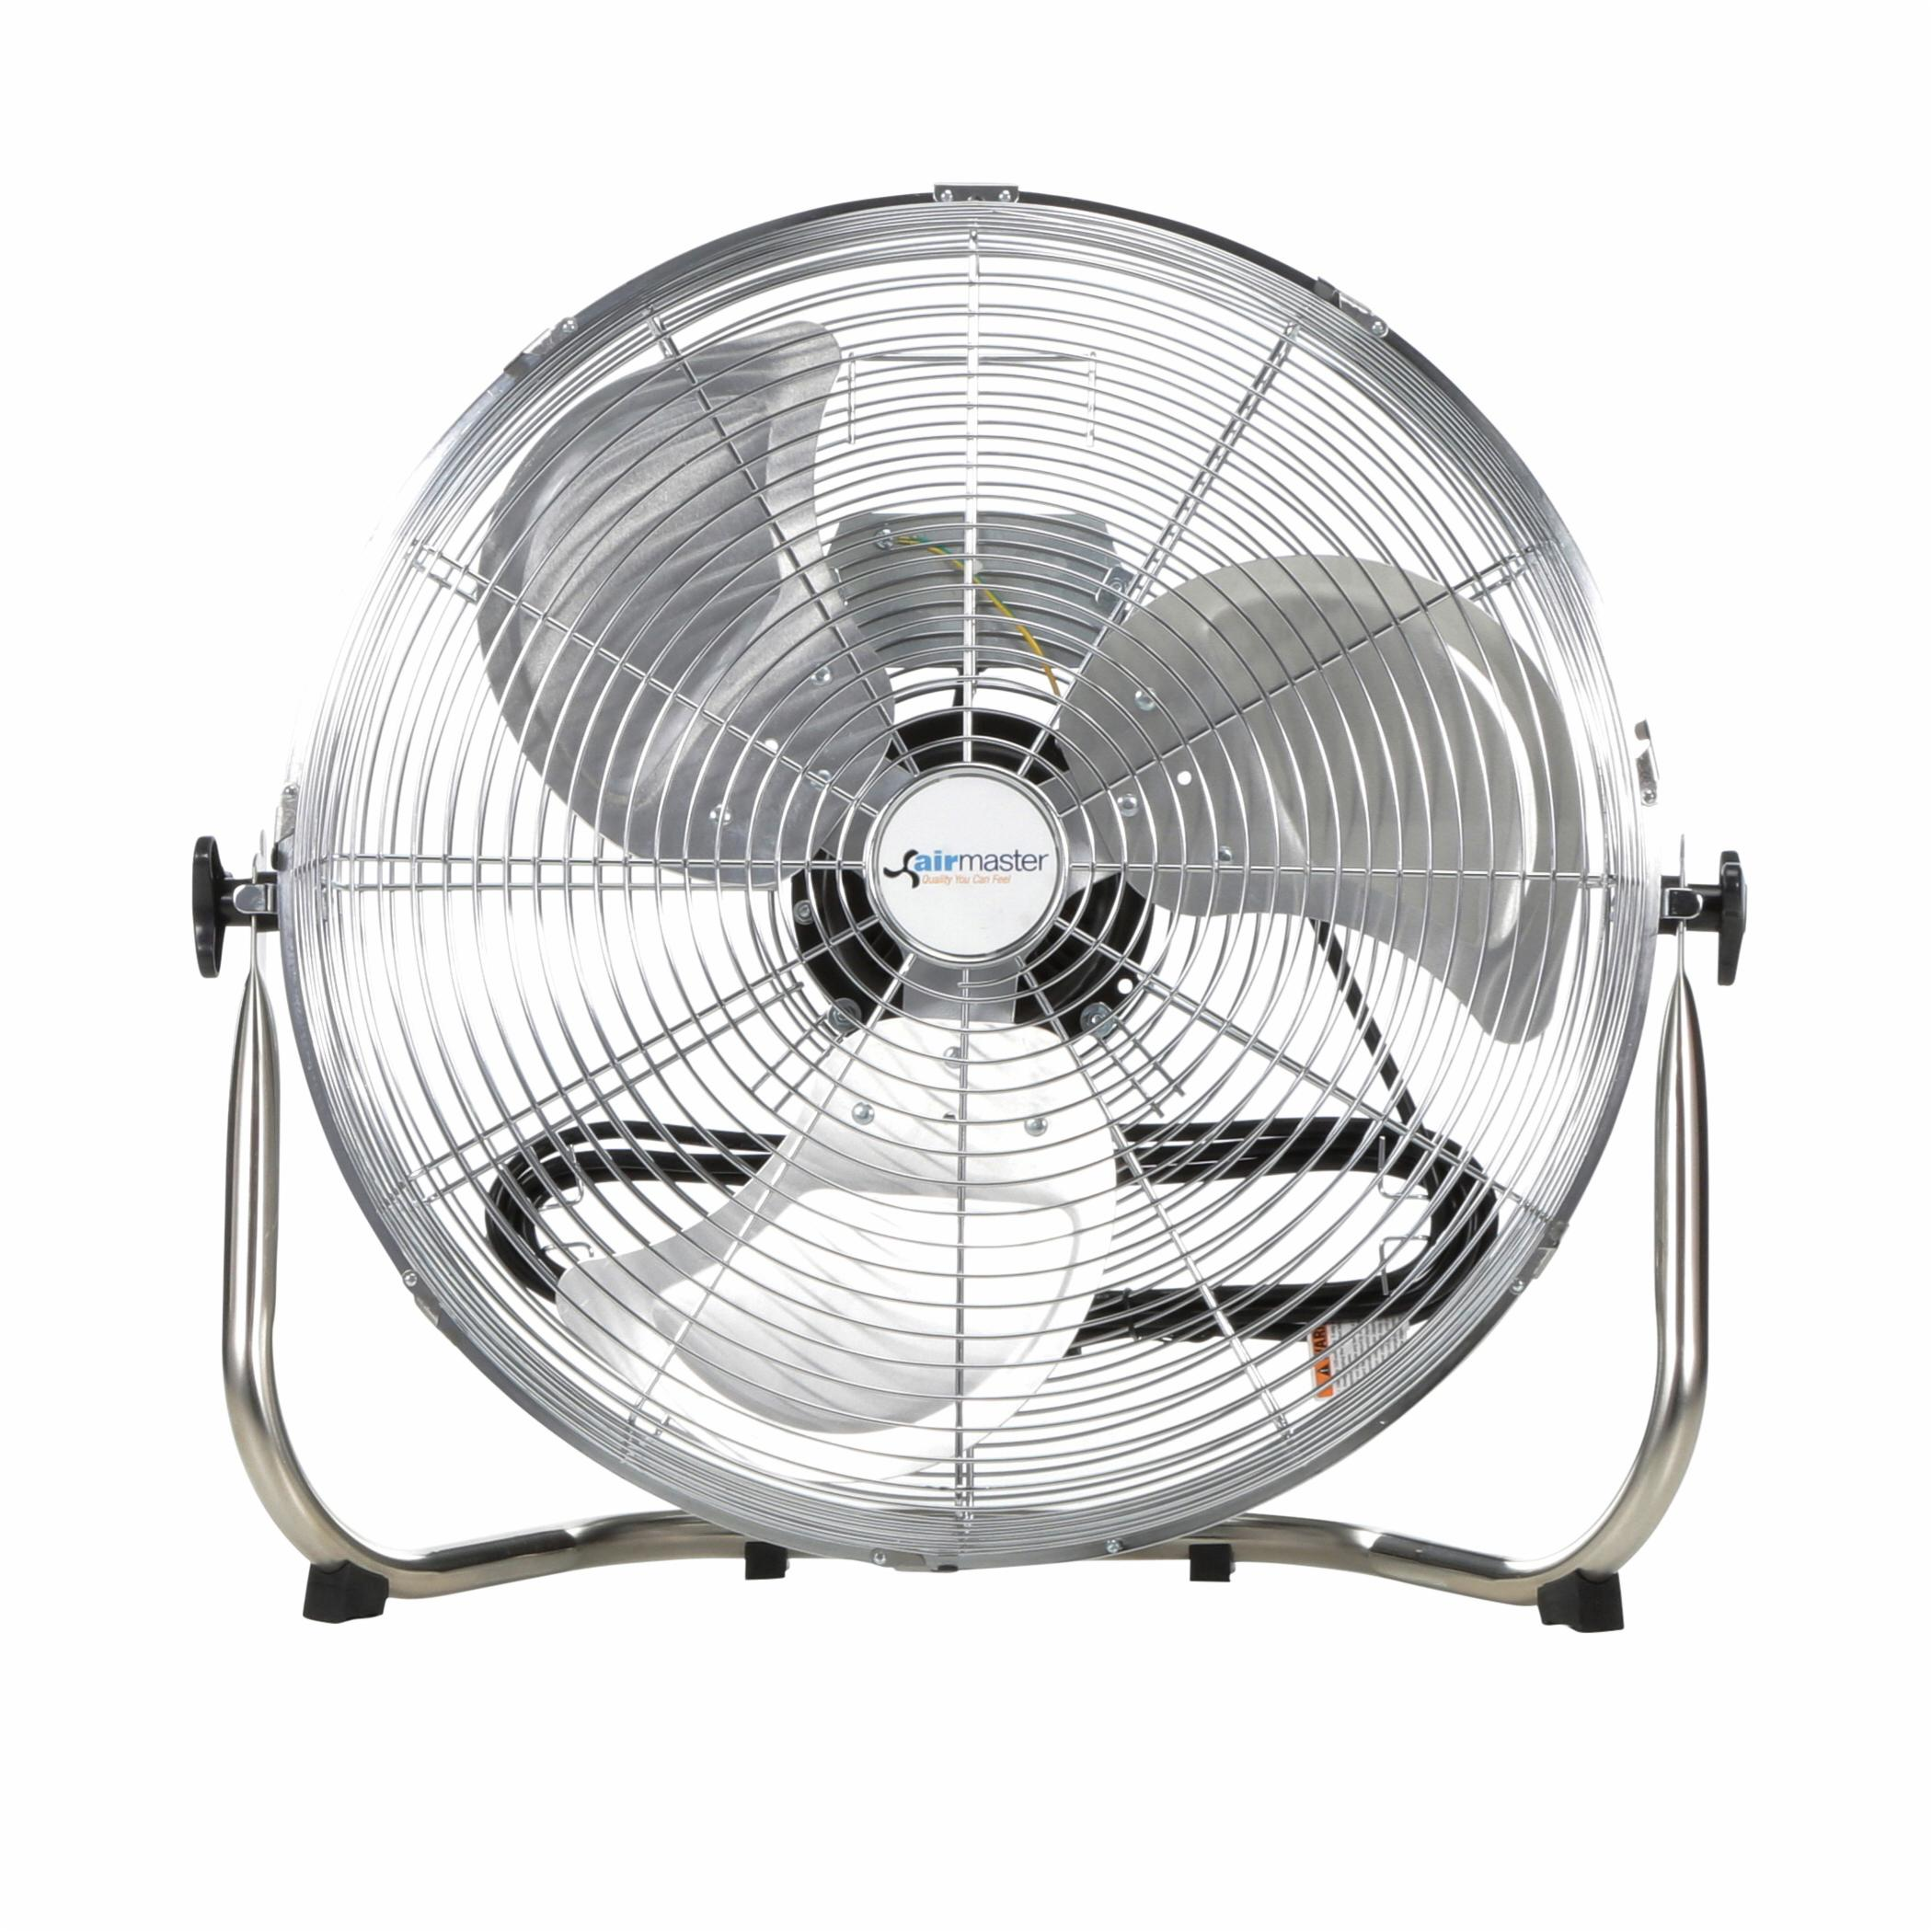 Airmaster® 78972 1-Phase Commercial Industrial Non-Oscillating Air Circulator, 18 in Blade, 2966/2437/2013 cfm Flow Rate, 115 VAC, 1.65 A